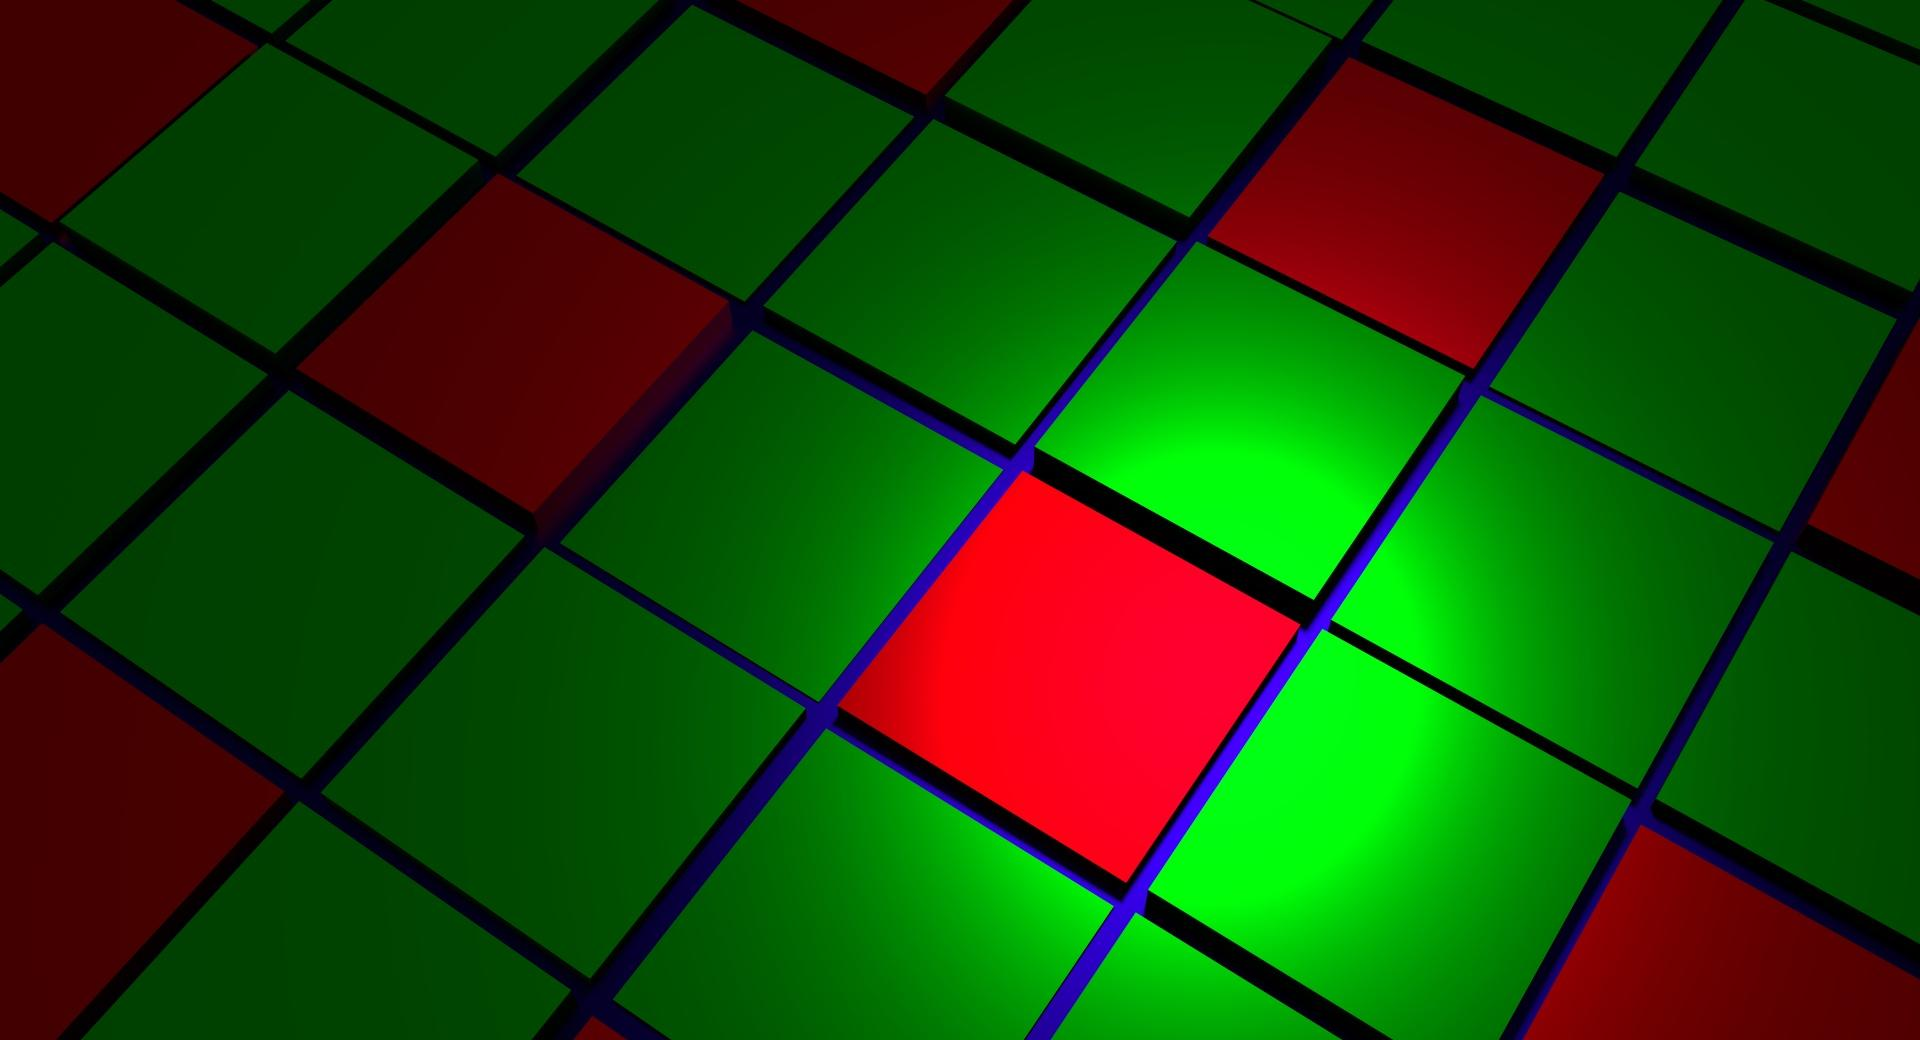 Green Red Cubes wallpapers HD quality